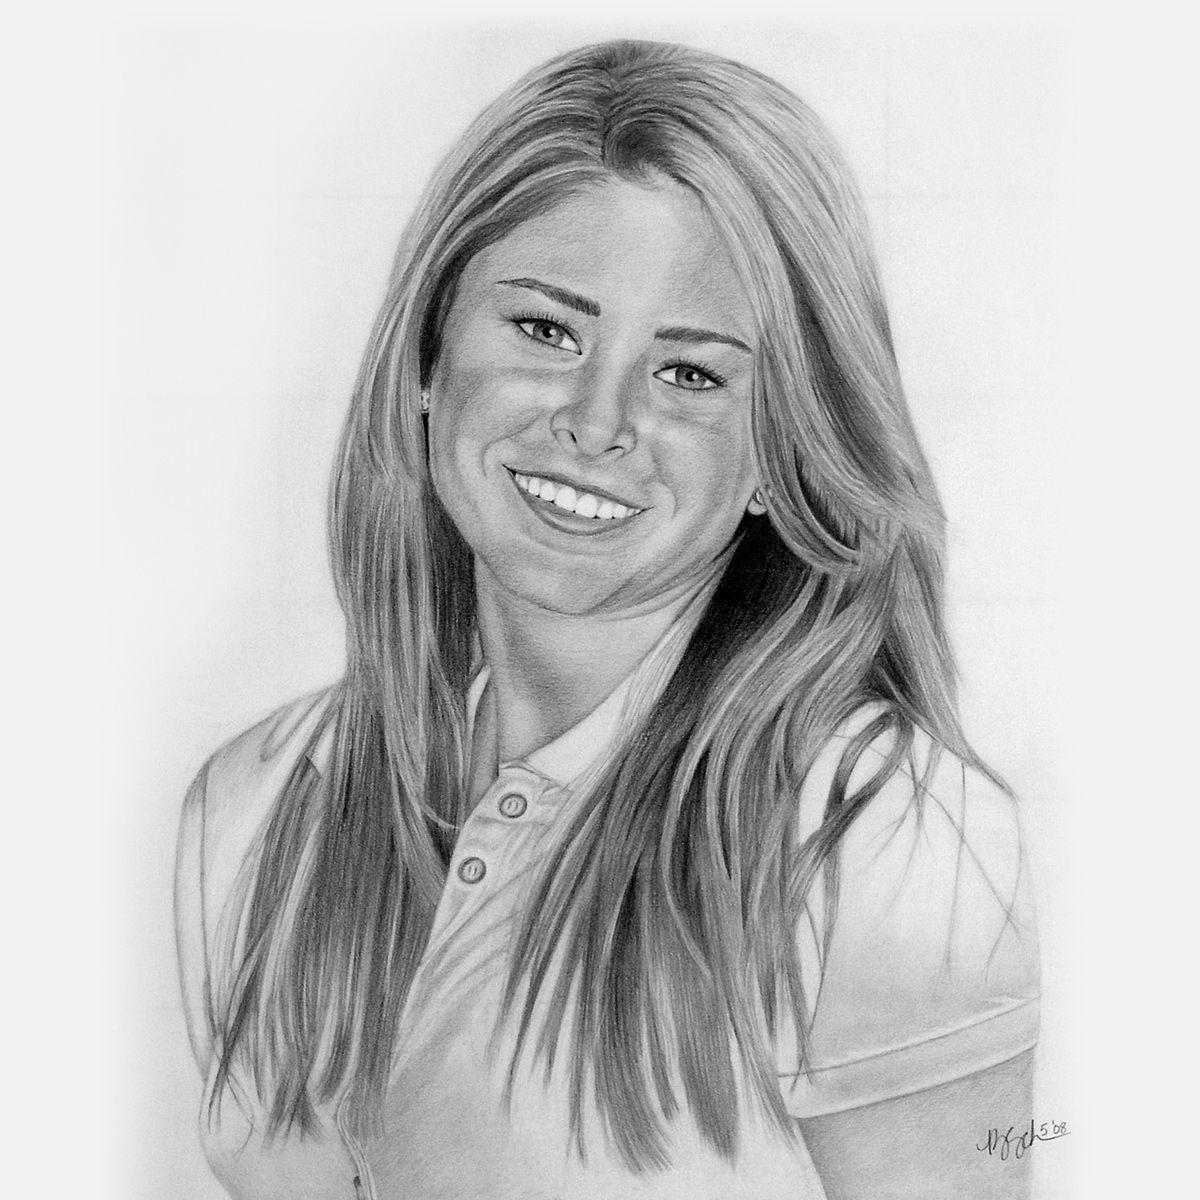 Teen Pencil Portraits - children, young adults